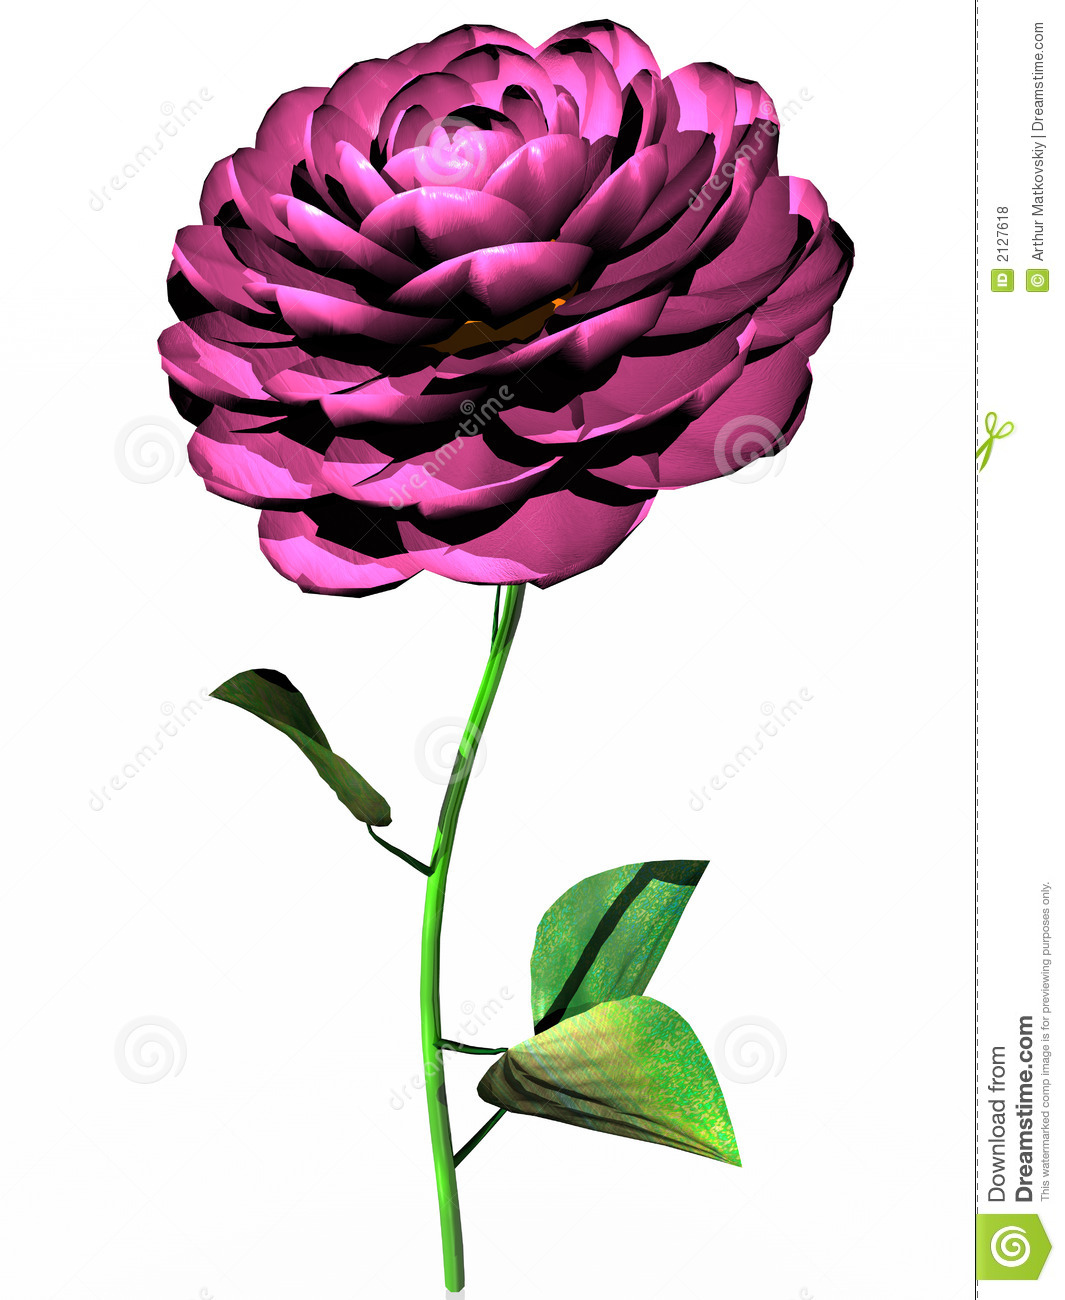 Pink Flower In 3d Royalty Free Stock Photos Image 2127618